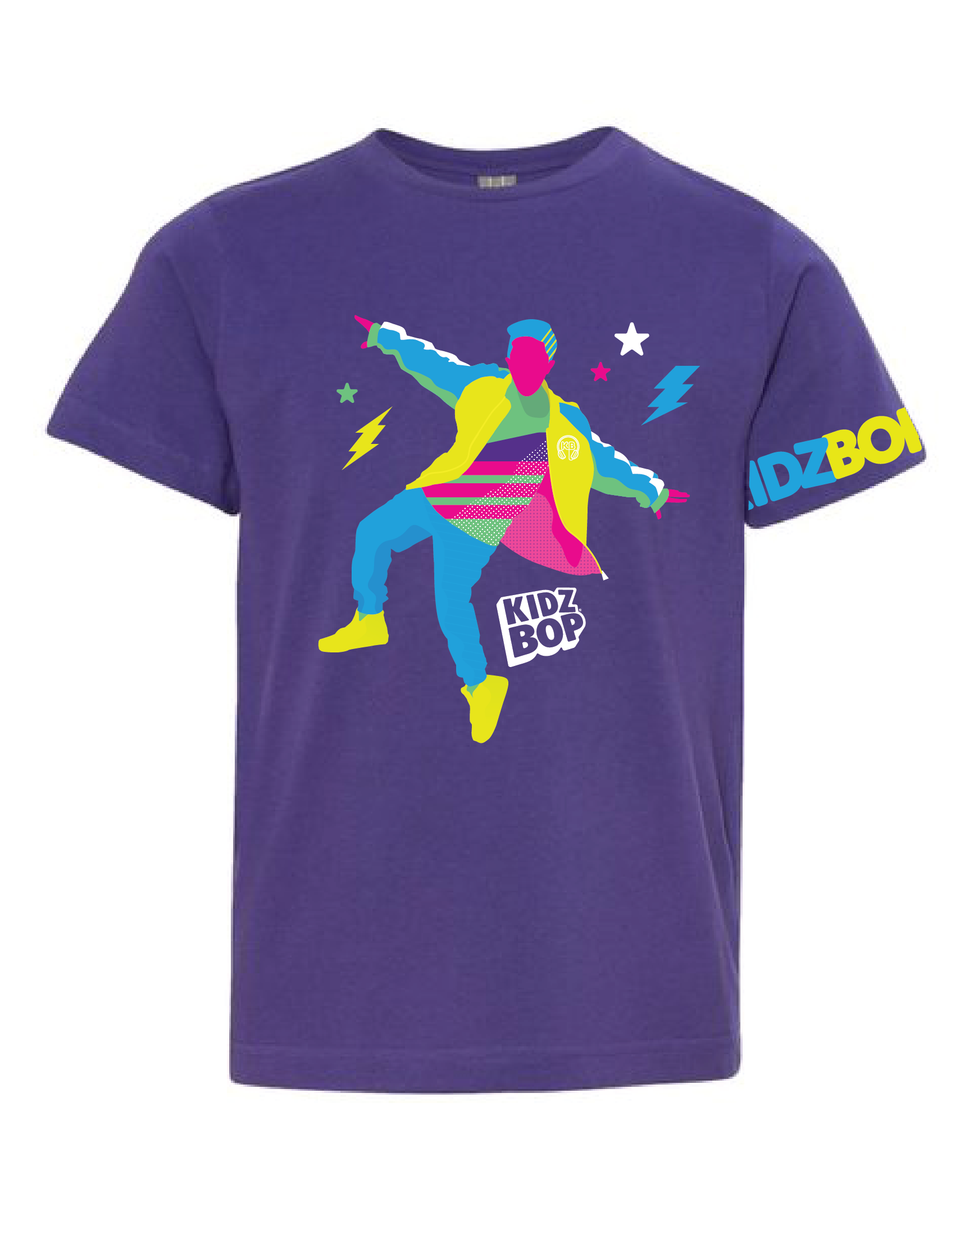 KIDZ BOP Pop Star Silhouette Youth Tee (Solo)